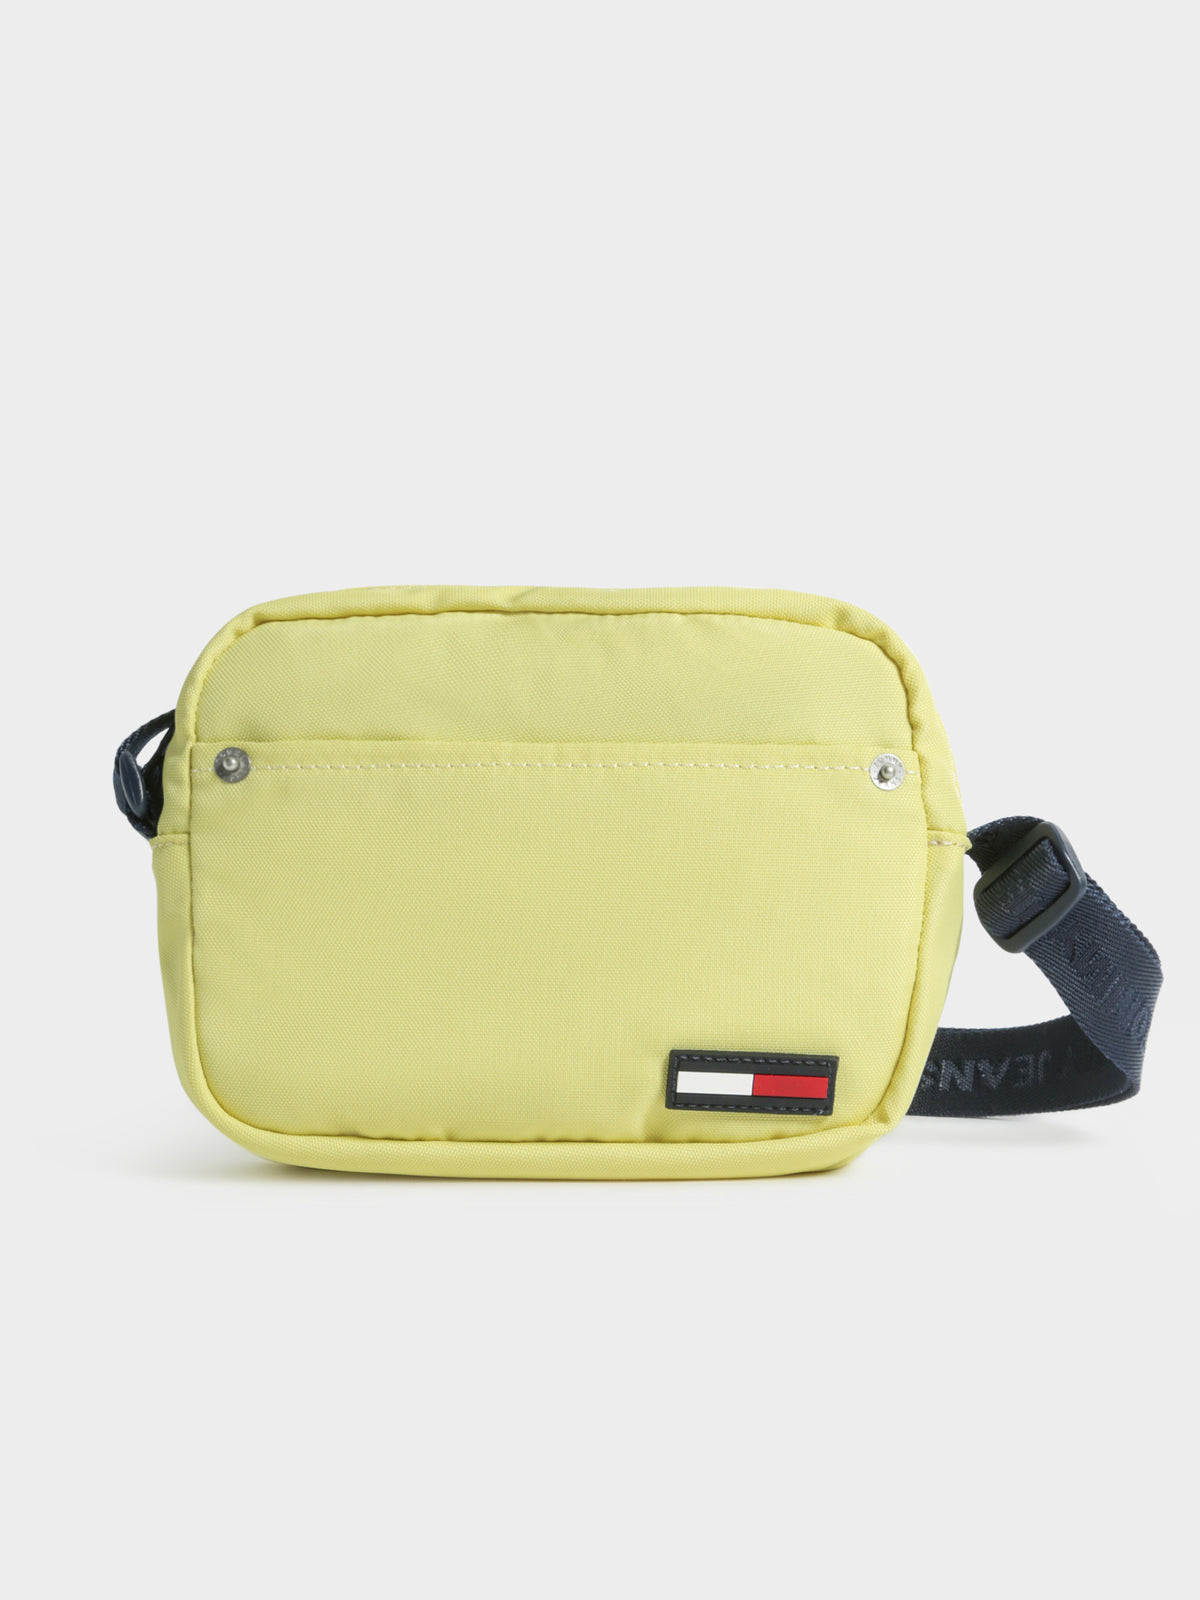 Campus Crossover Bag in Lemon